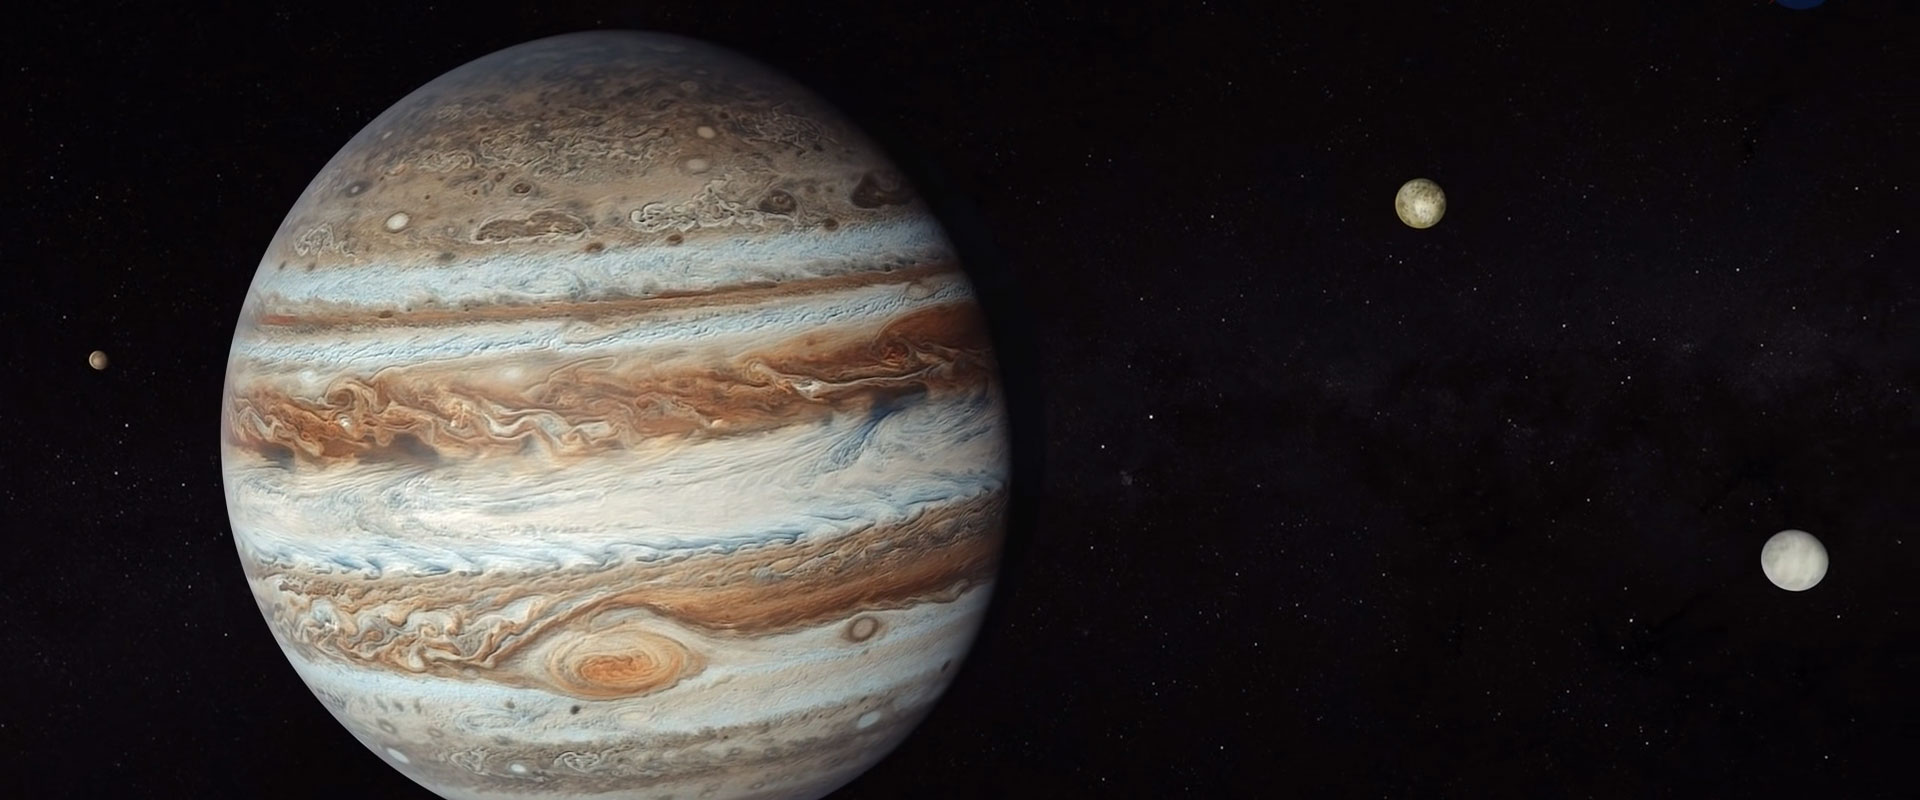 planet jupiter information - HD 1920×800